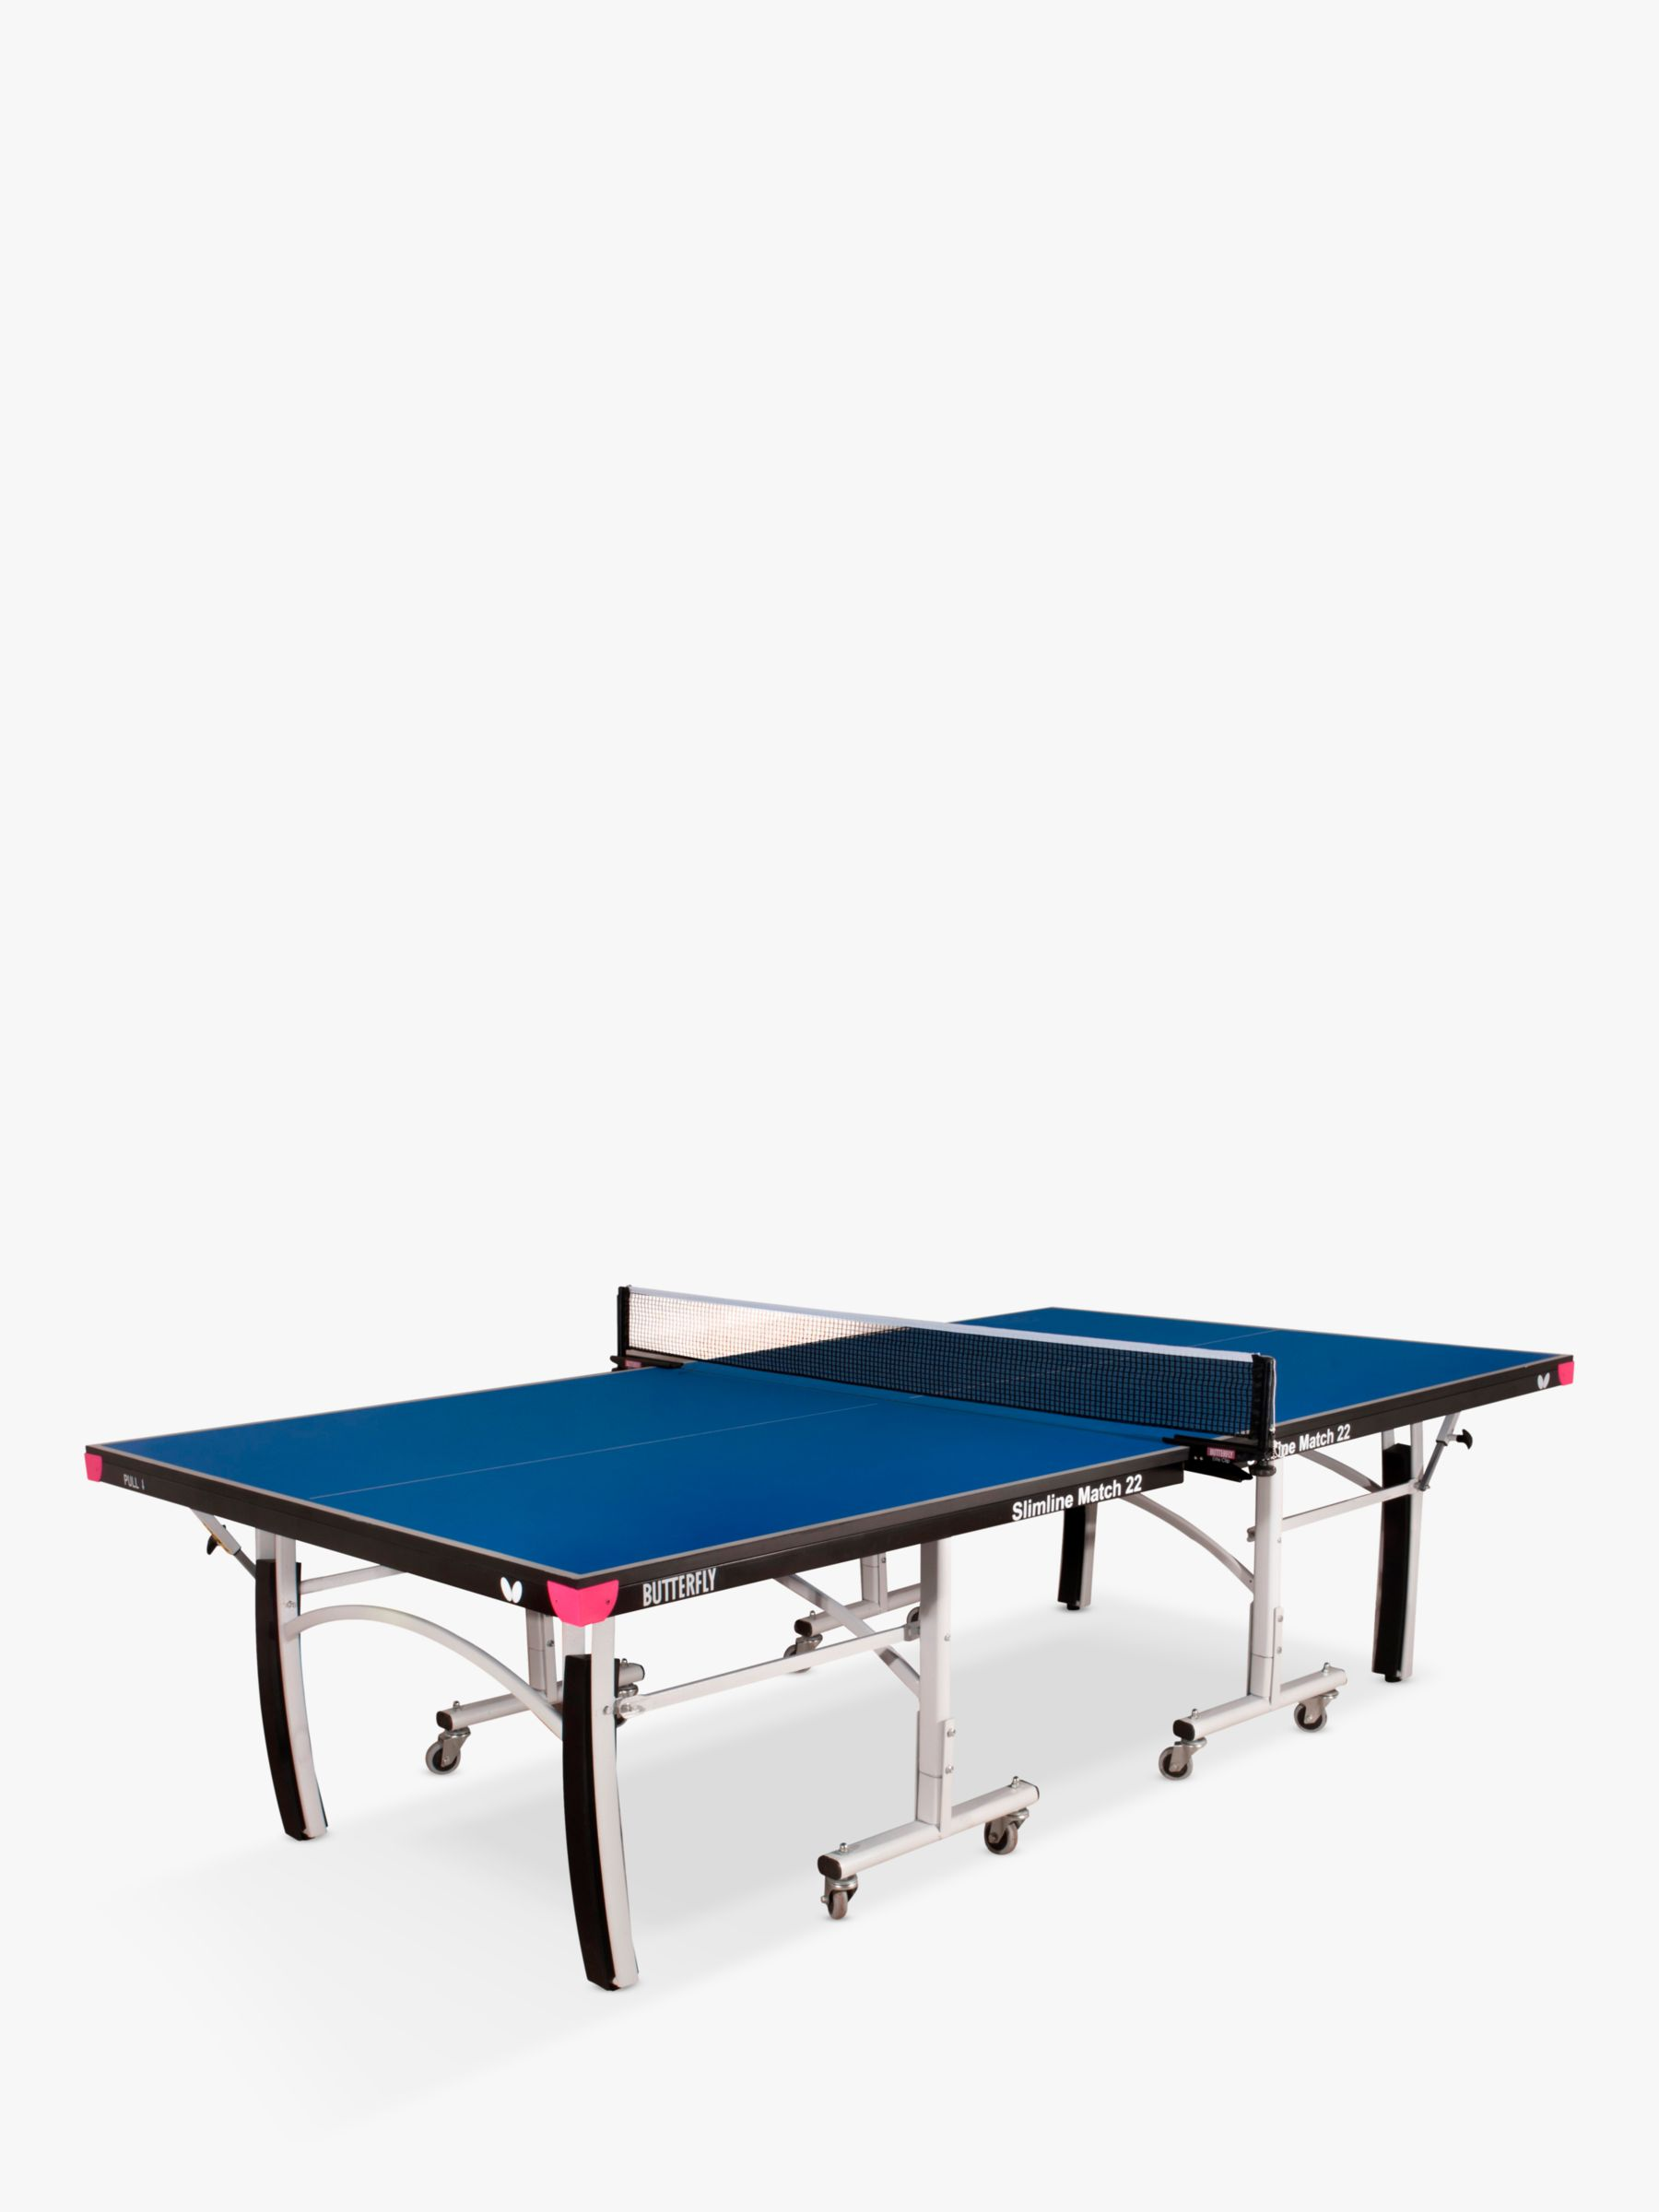 Butterfly Butterfly Slimline Match 22 Indoor Table Tennis Table